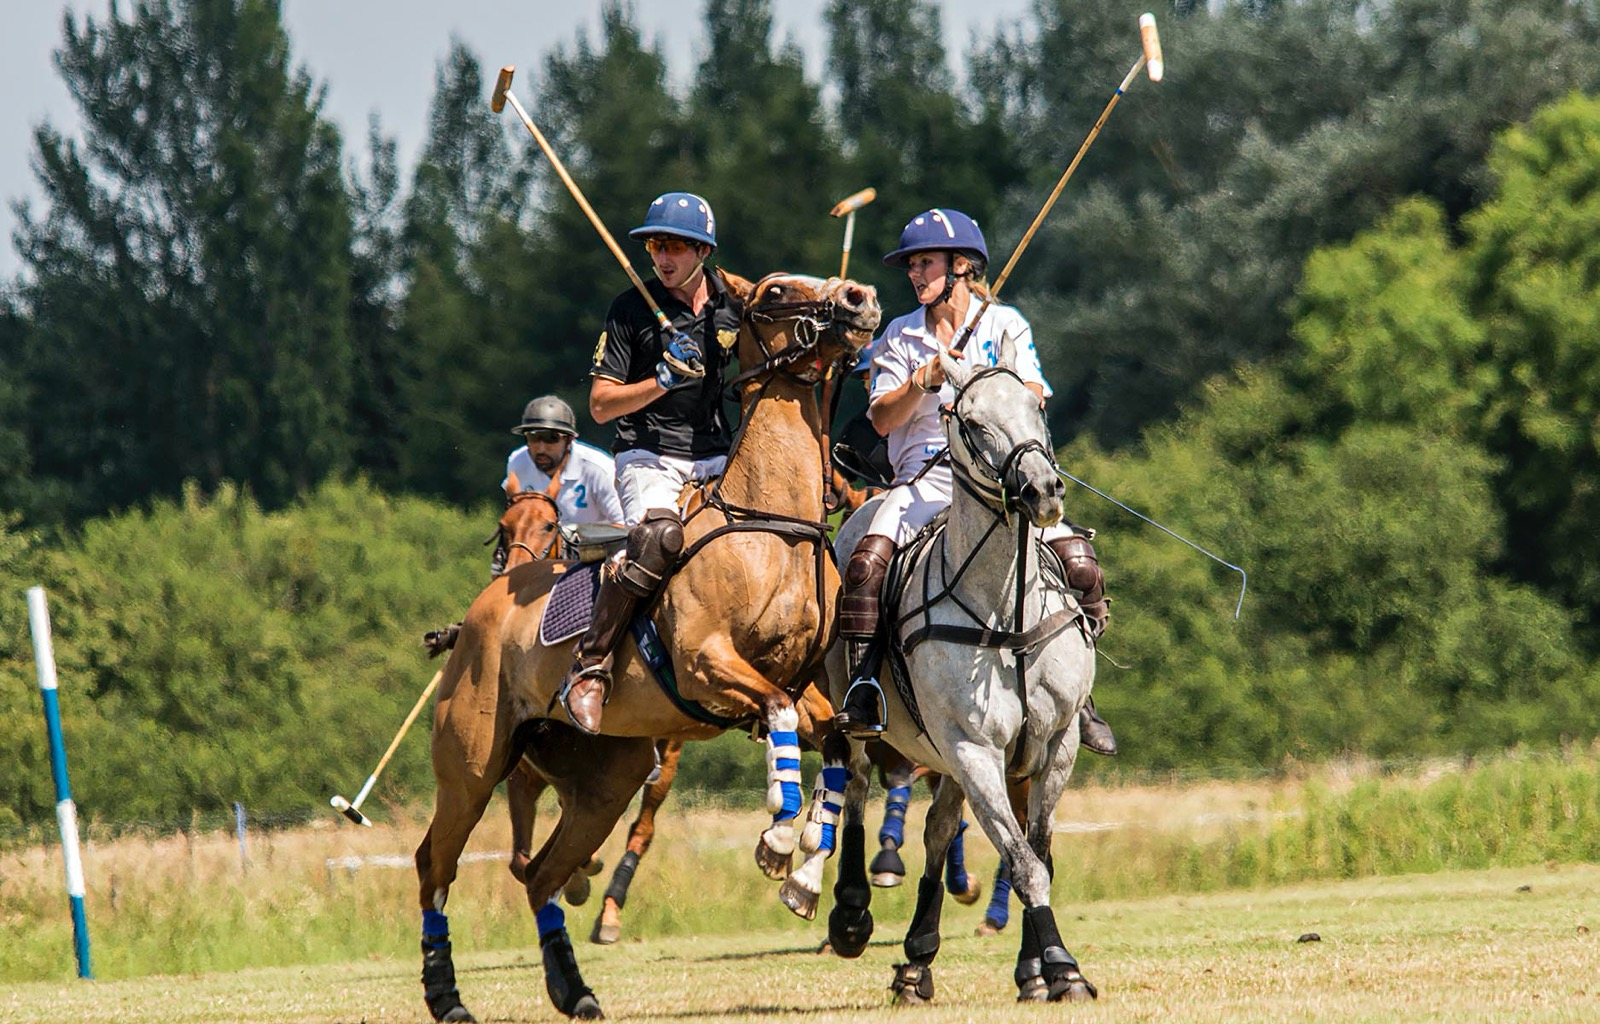 Fast pace of Polo horse sport